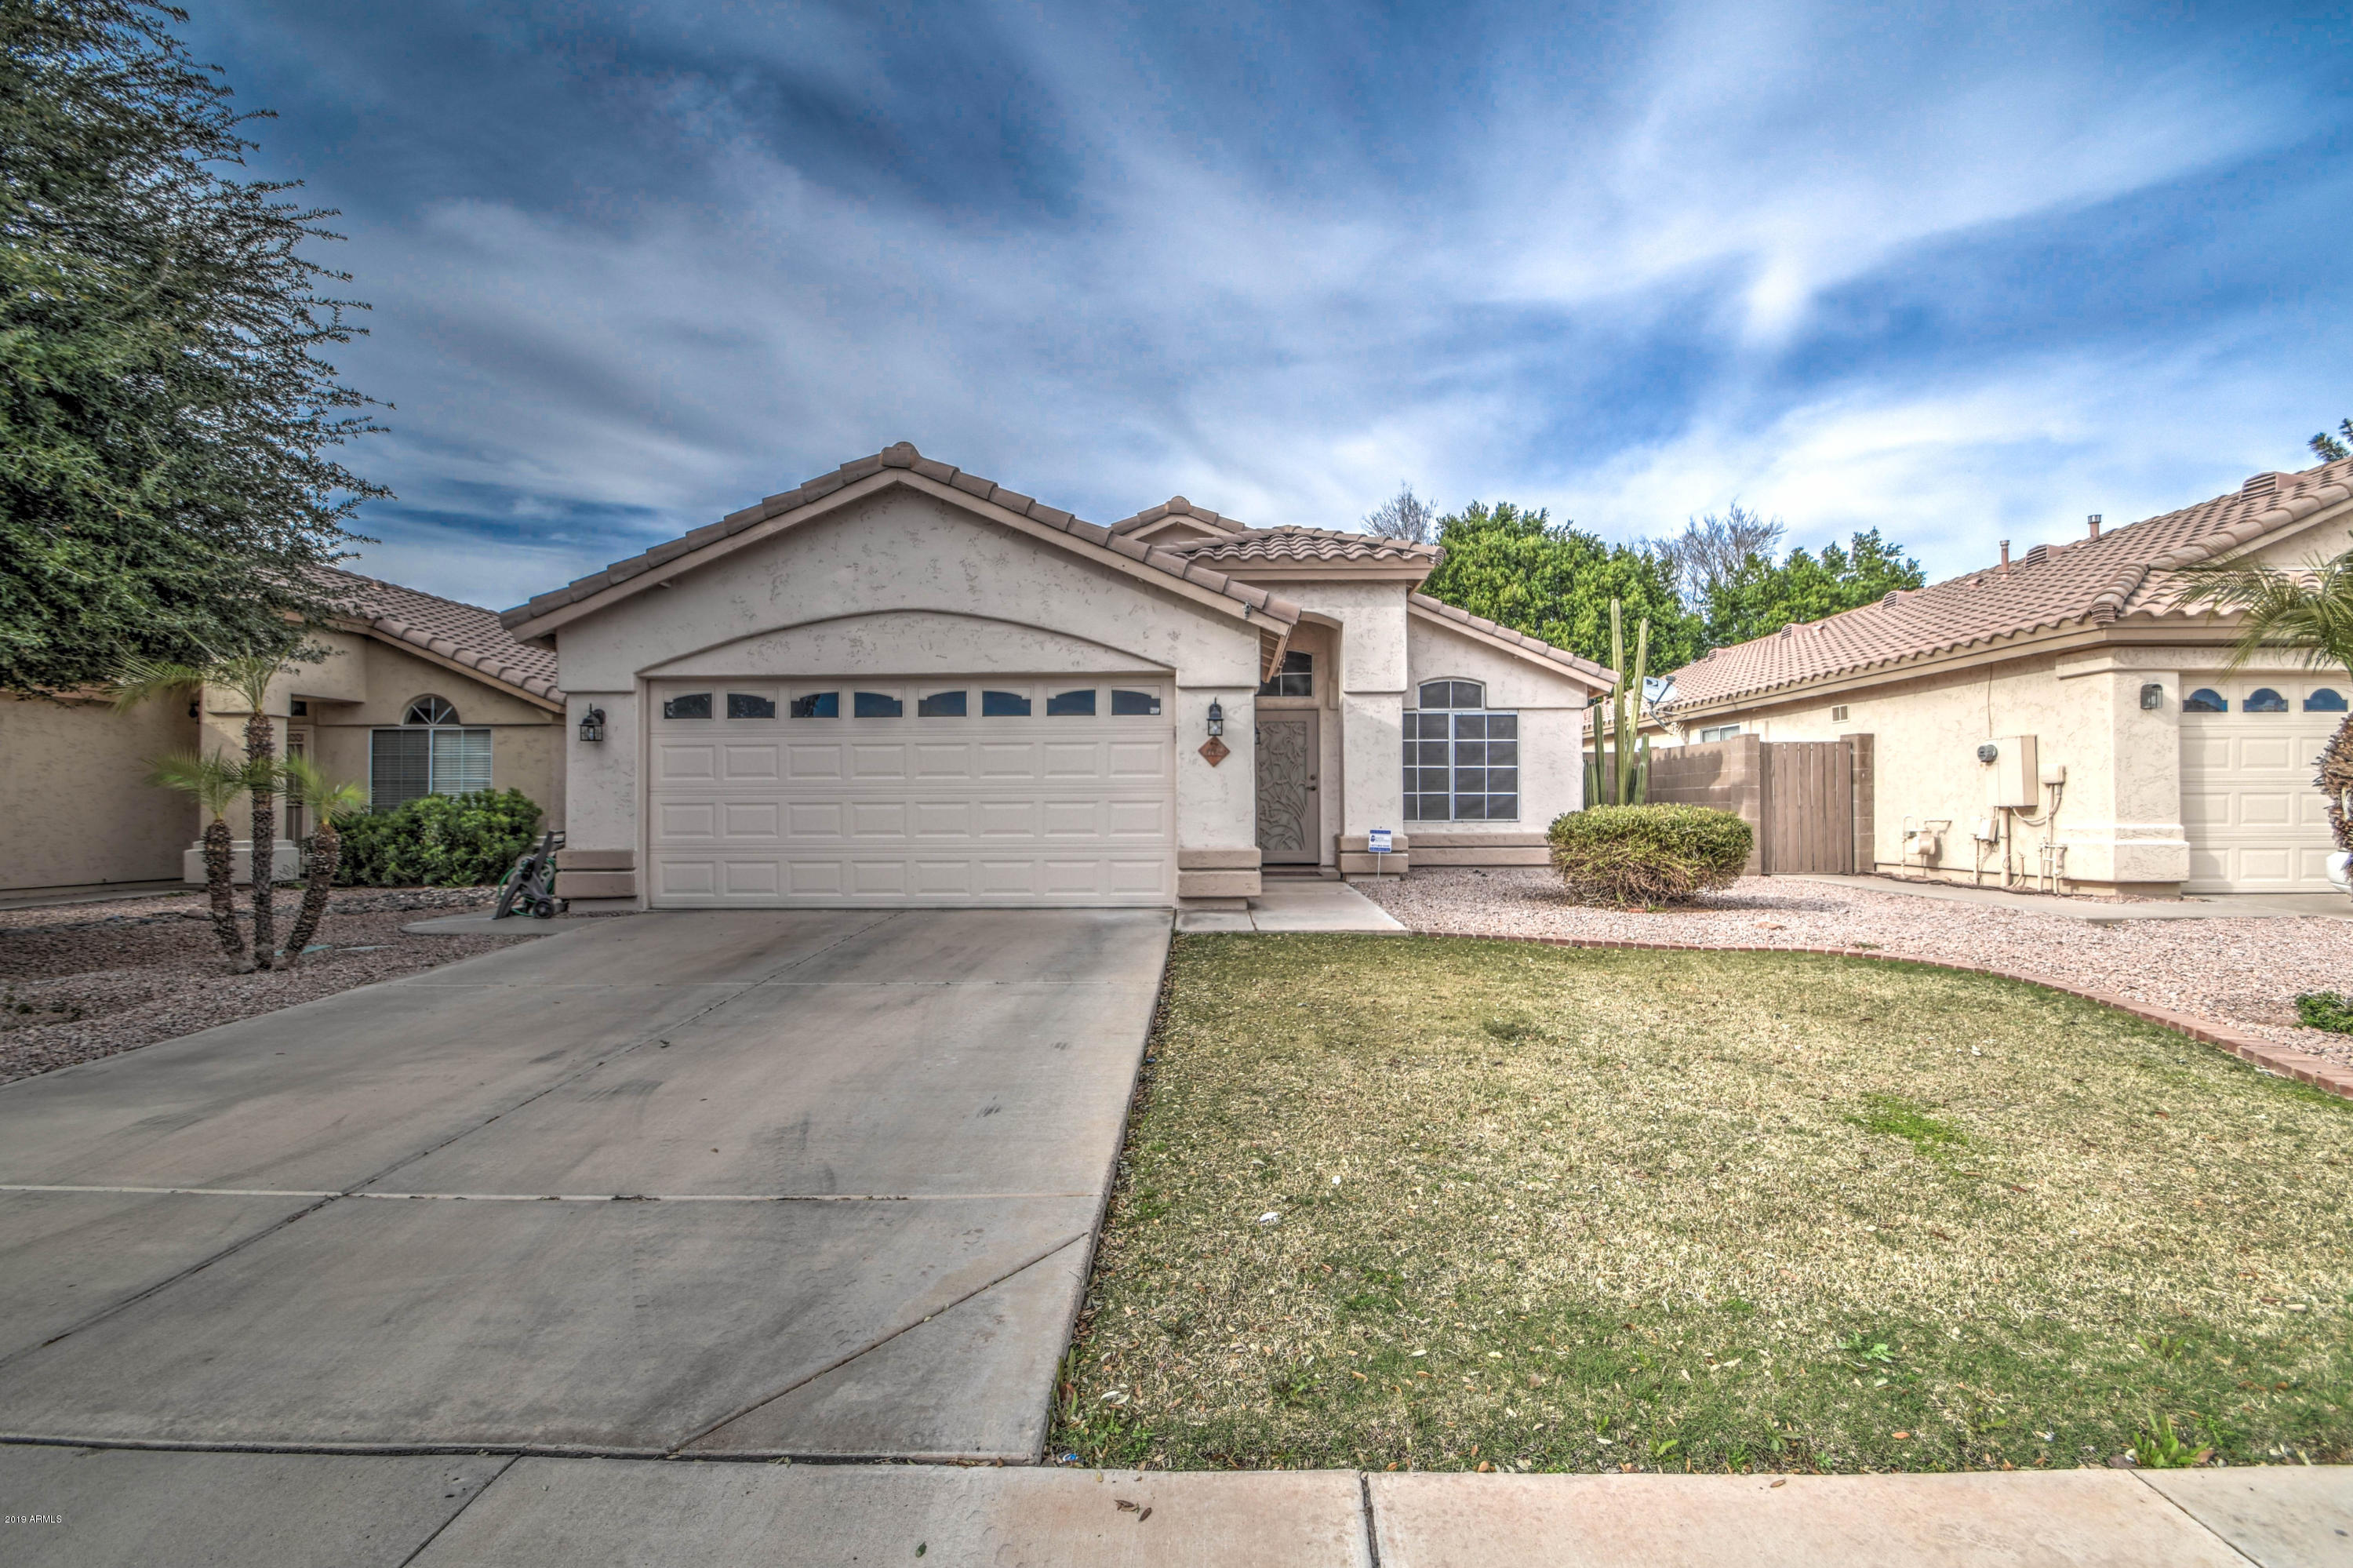 Photo of 462 W ENCINAS Street, Gilbert, AZ 85233